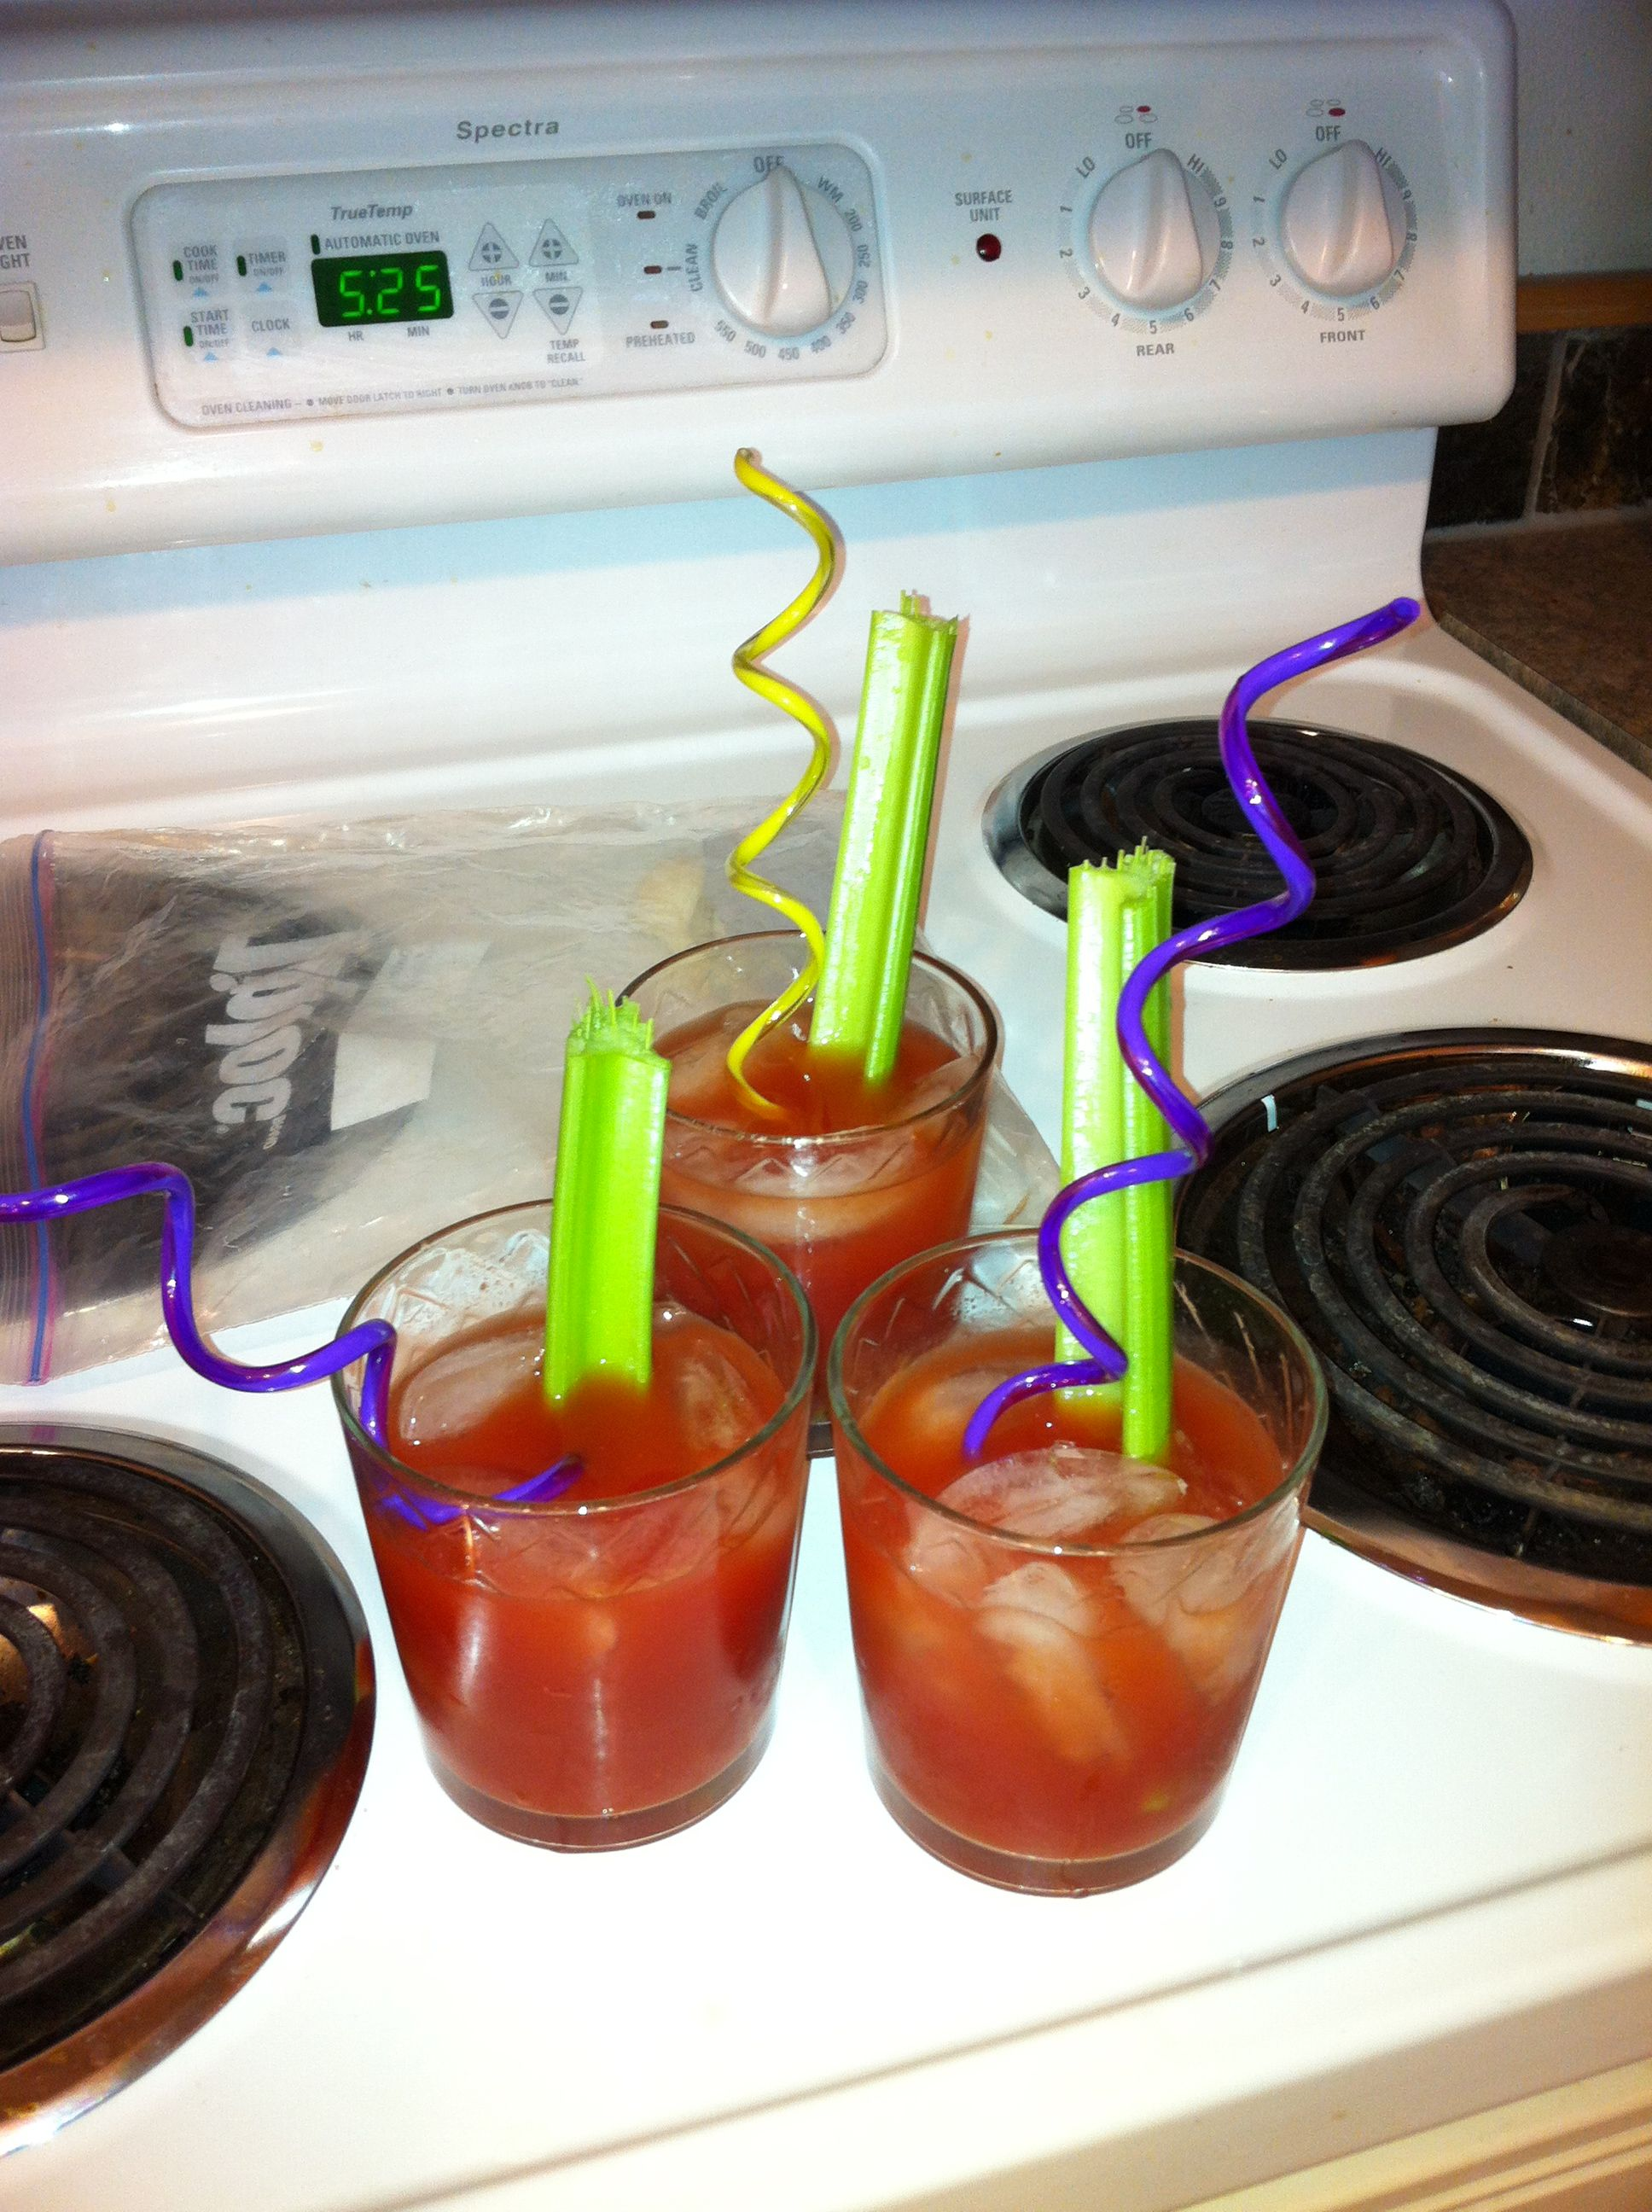 Homemade bloody Mary's! I only do spicy and with a celery stick! I need the celery or else the drink just doesn't work.